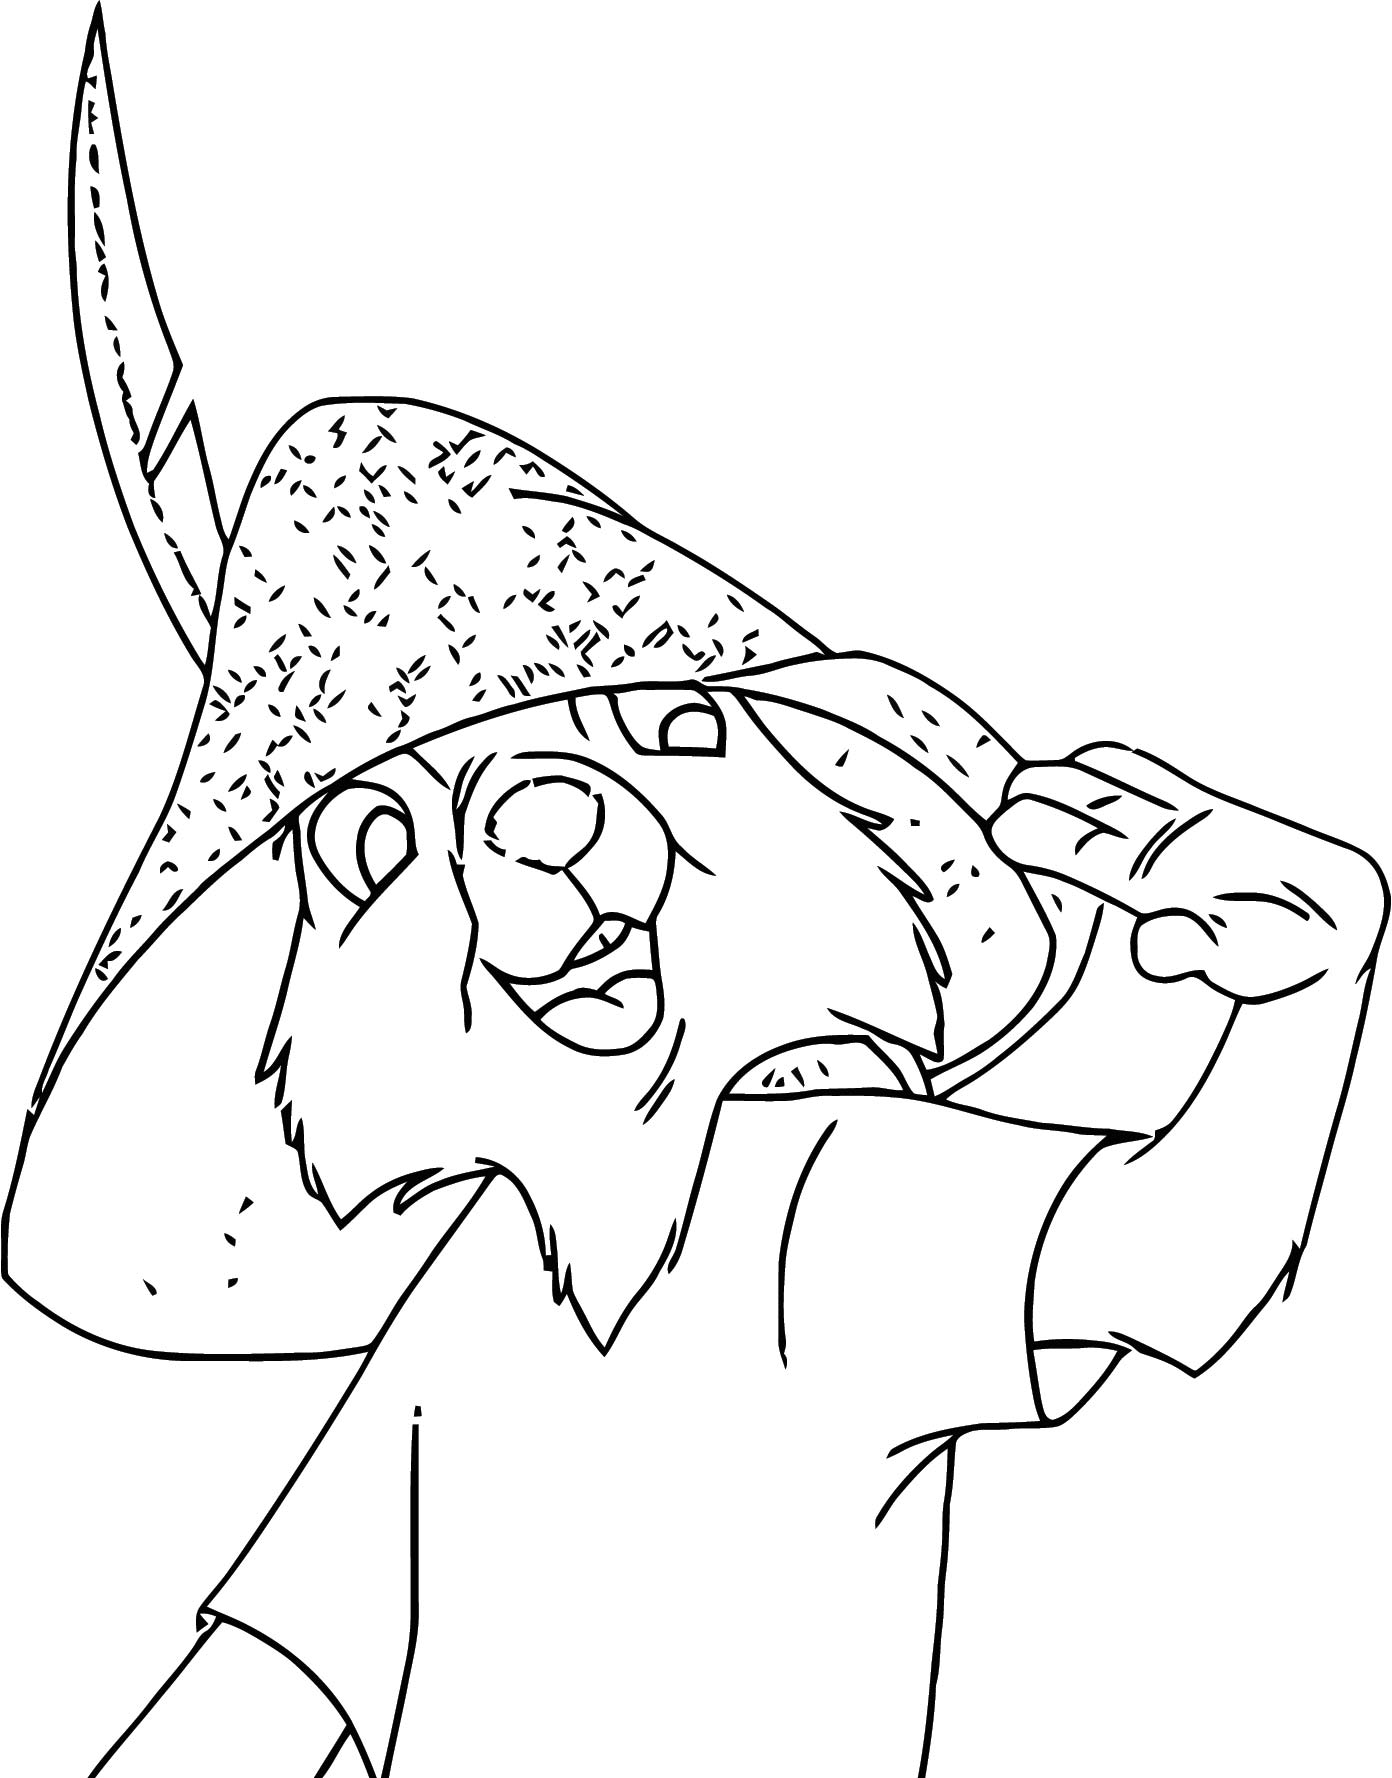 Robin Friend 1 Coloring Page